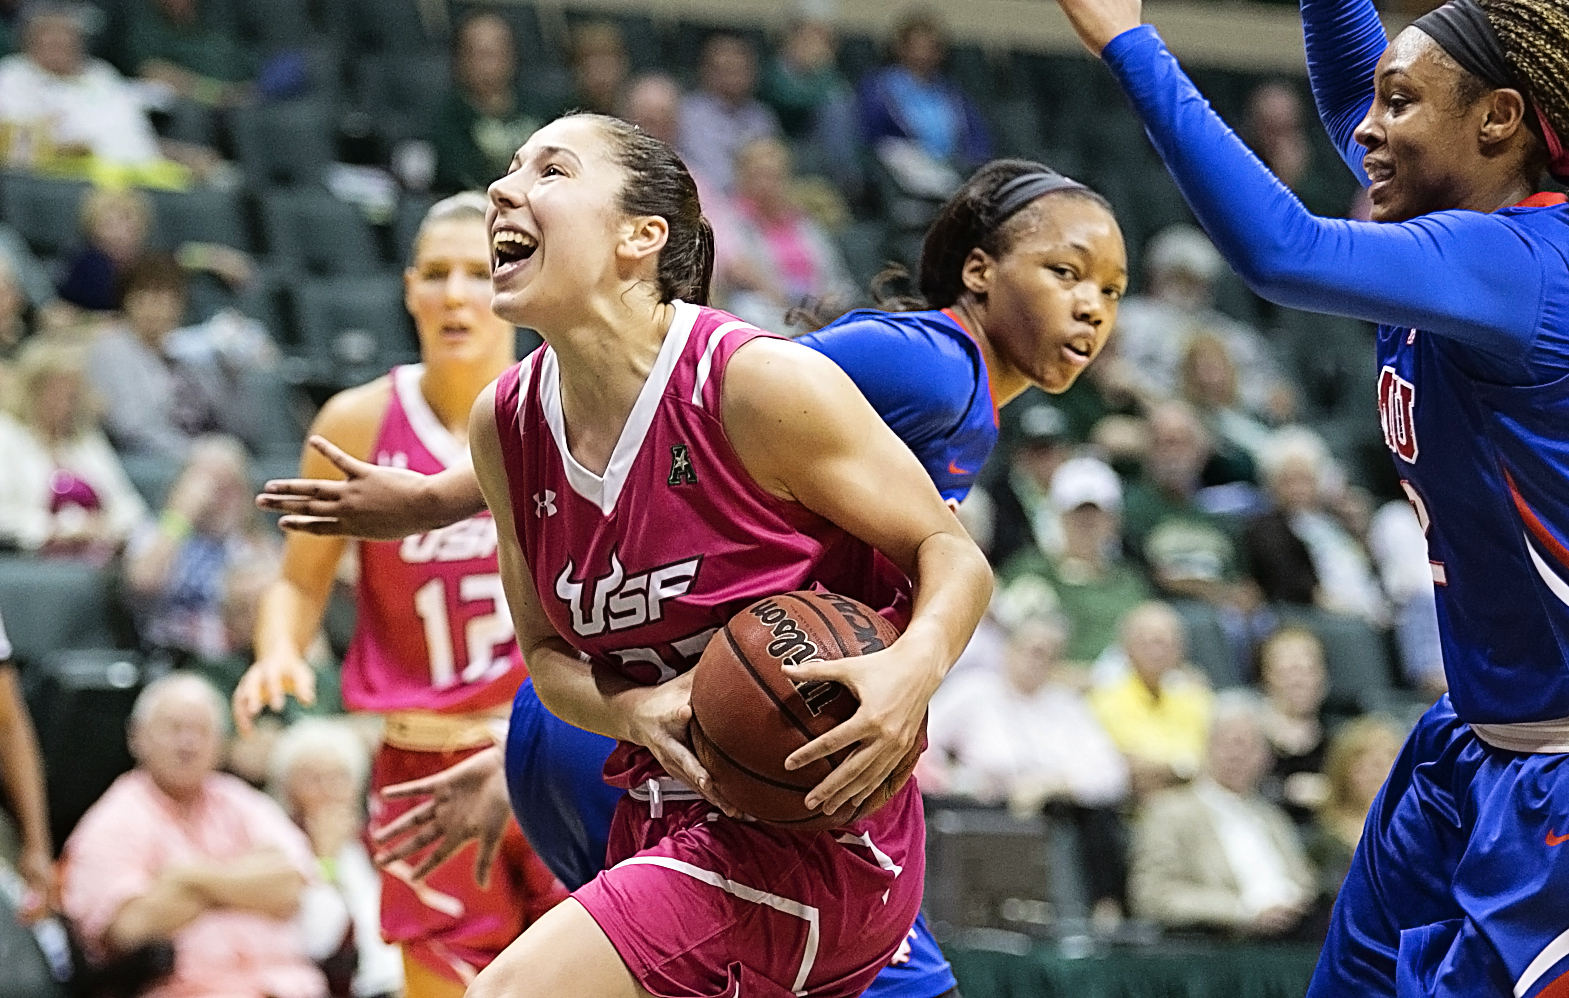 Flores is fouled on her wa tot the basket/CARMEN MANDATO